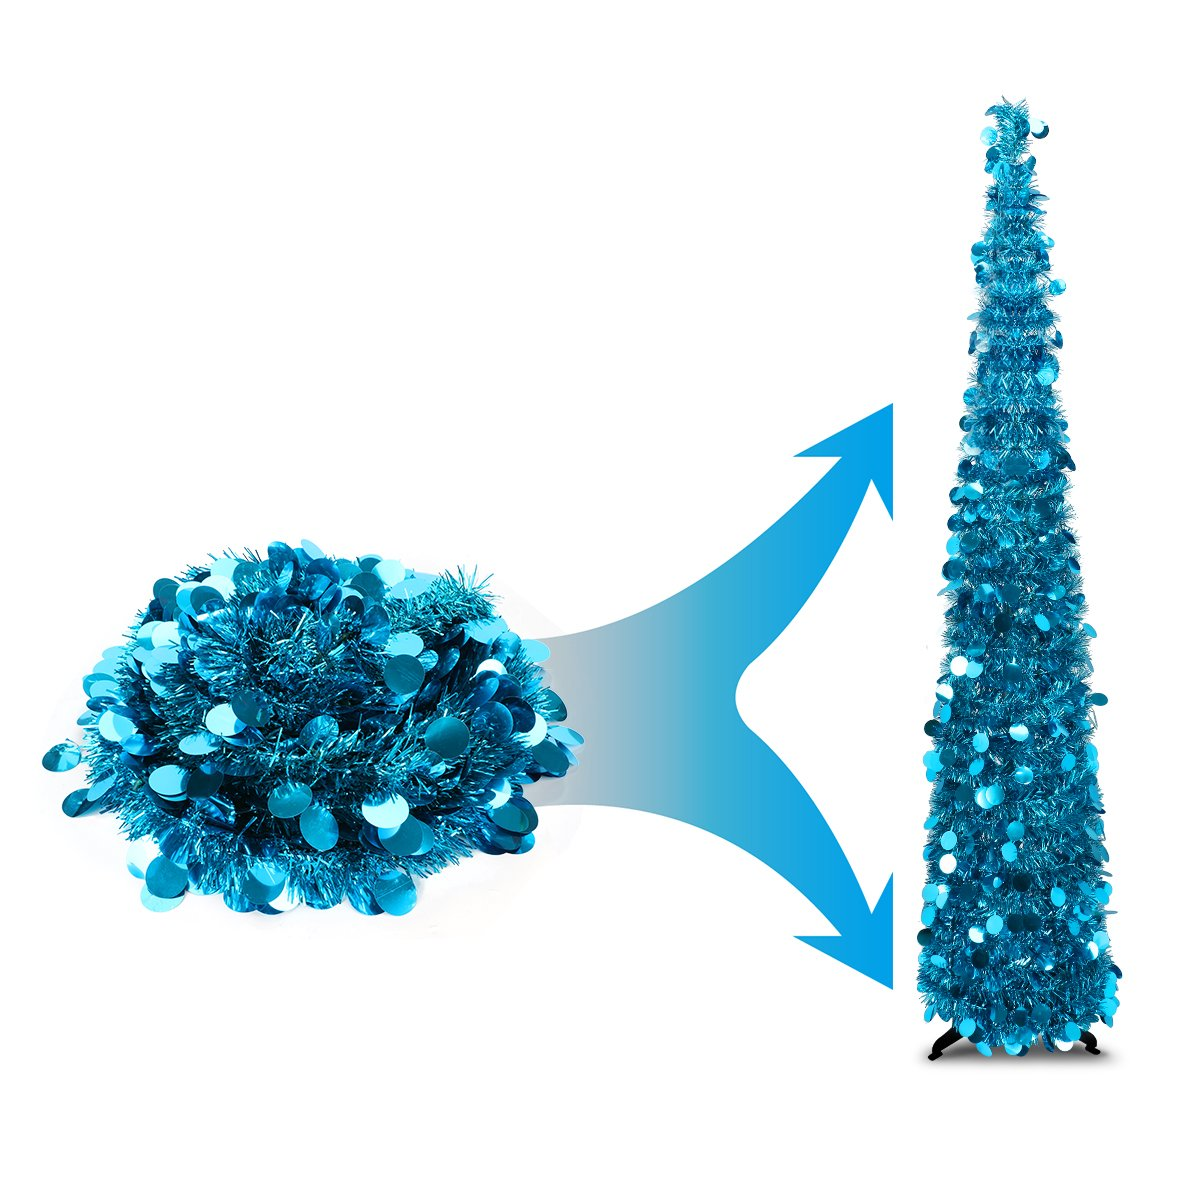 3SPRINGS (New Launch) Joy-Leo Blue Decorative Artificial Tree for Wedding & Home & Party, LED String Lights Mate Tree, Shiny Four-Season Christmas Tree, Glittering & Sparking, Collapsible & Reusable